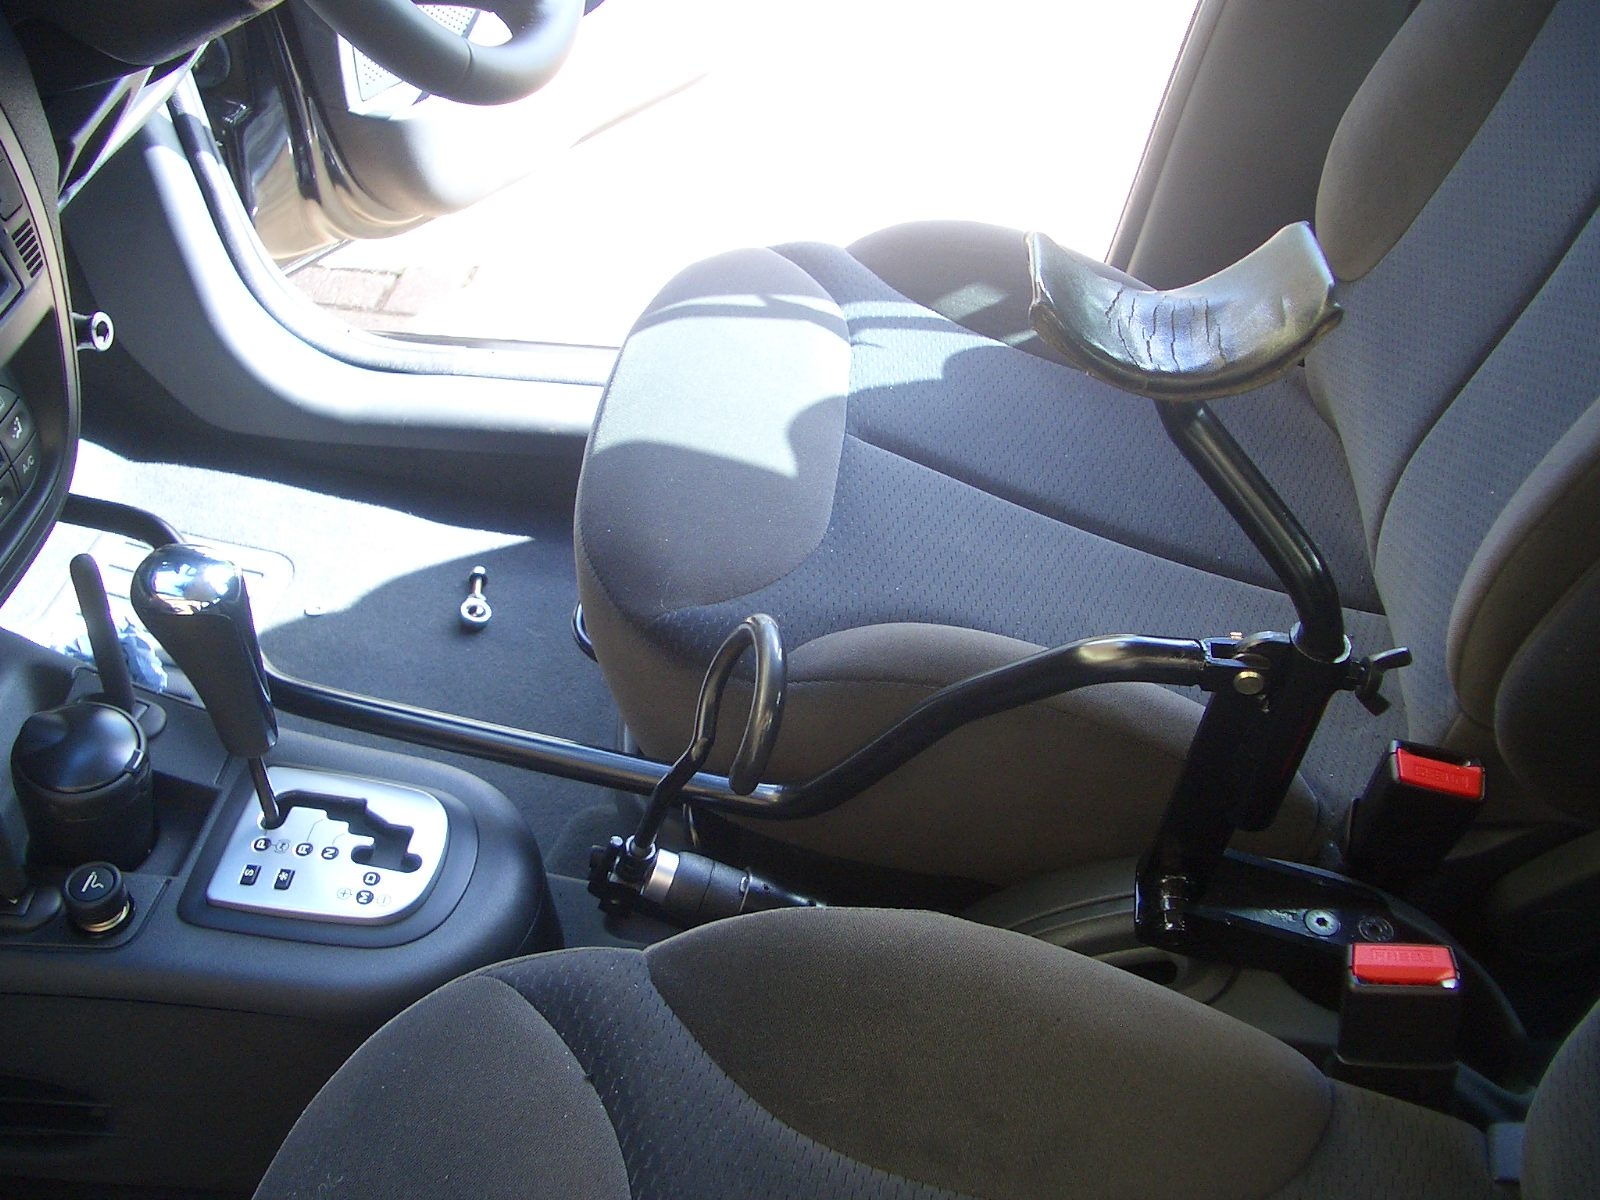 Adapted Citroen C3 for driver with no hands